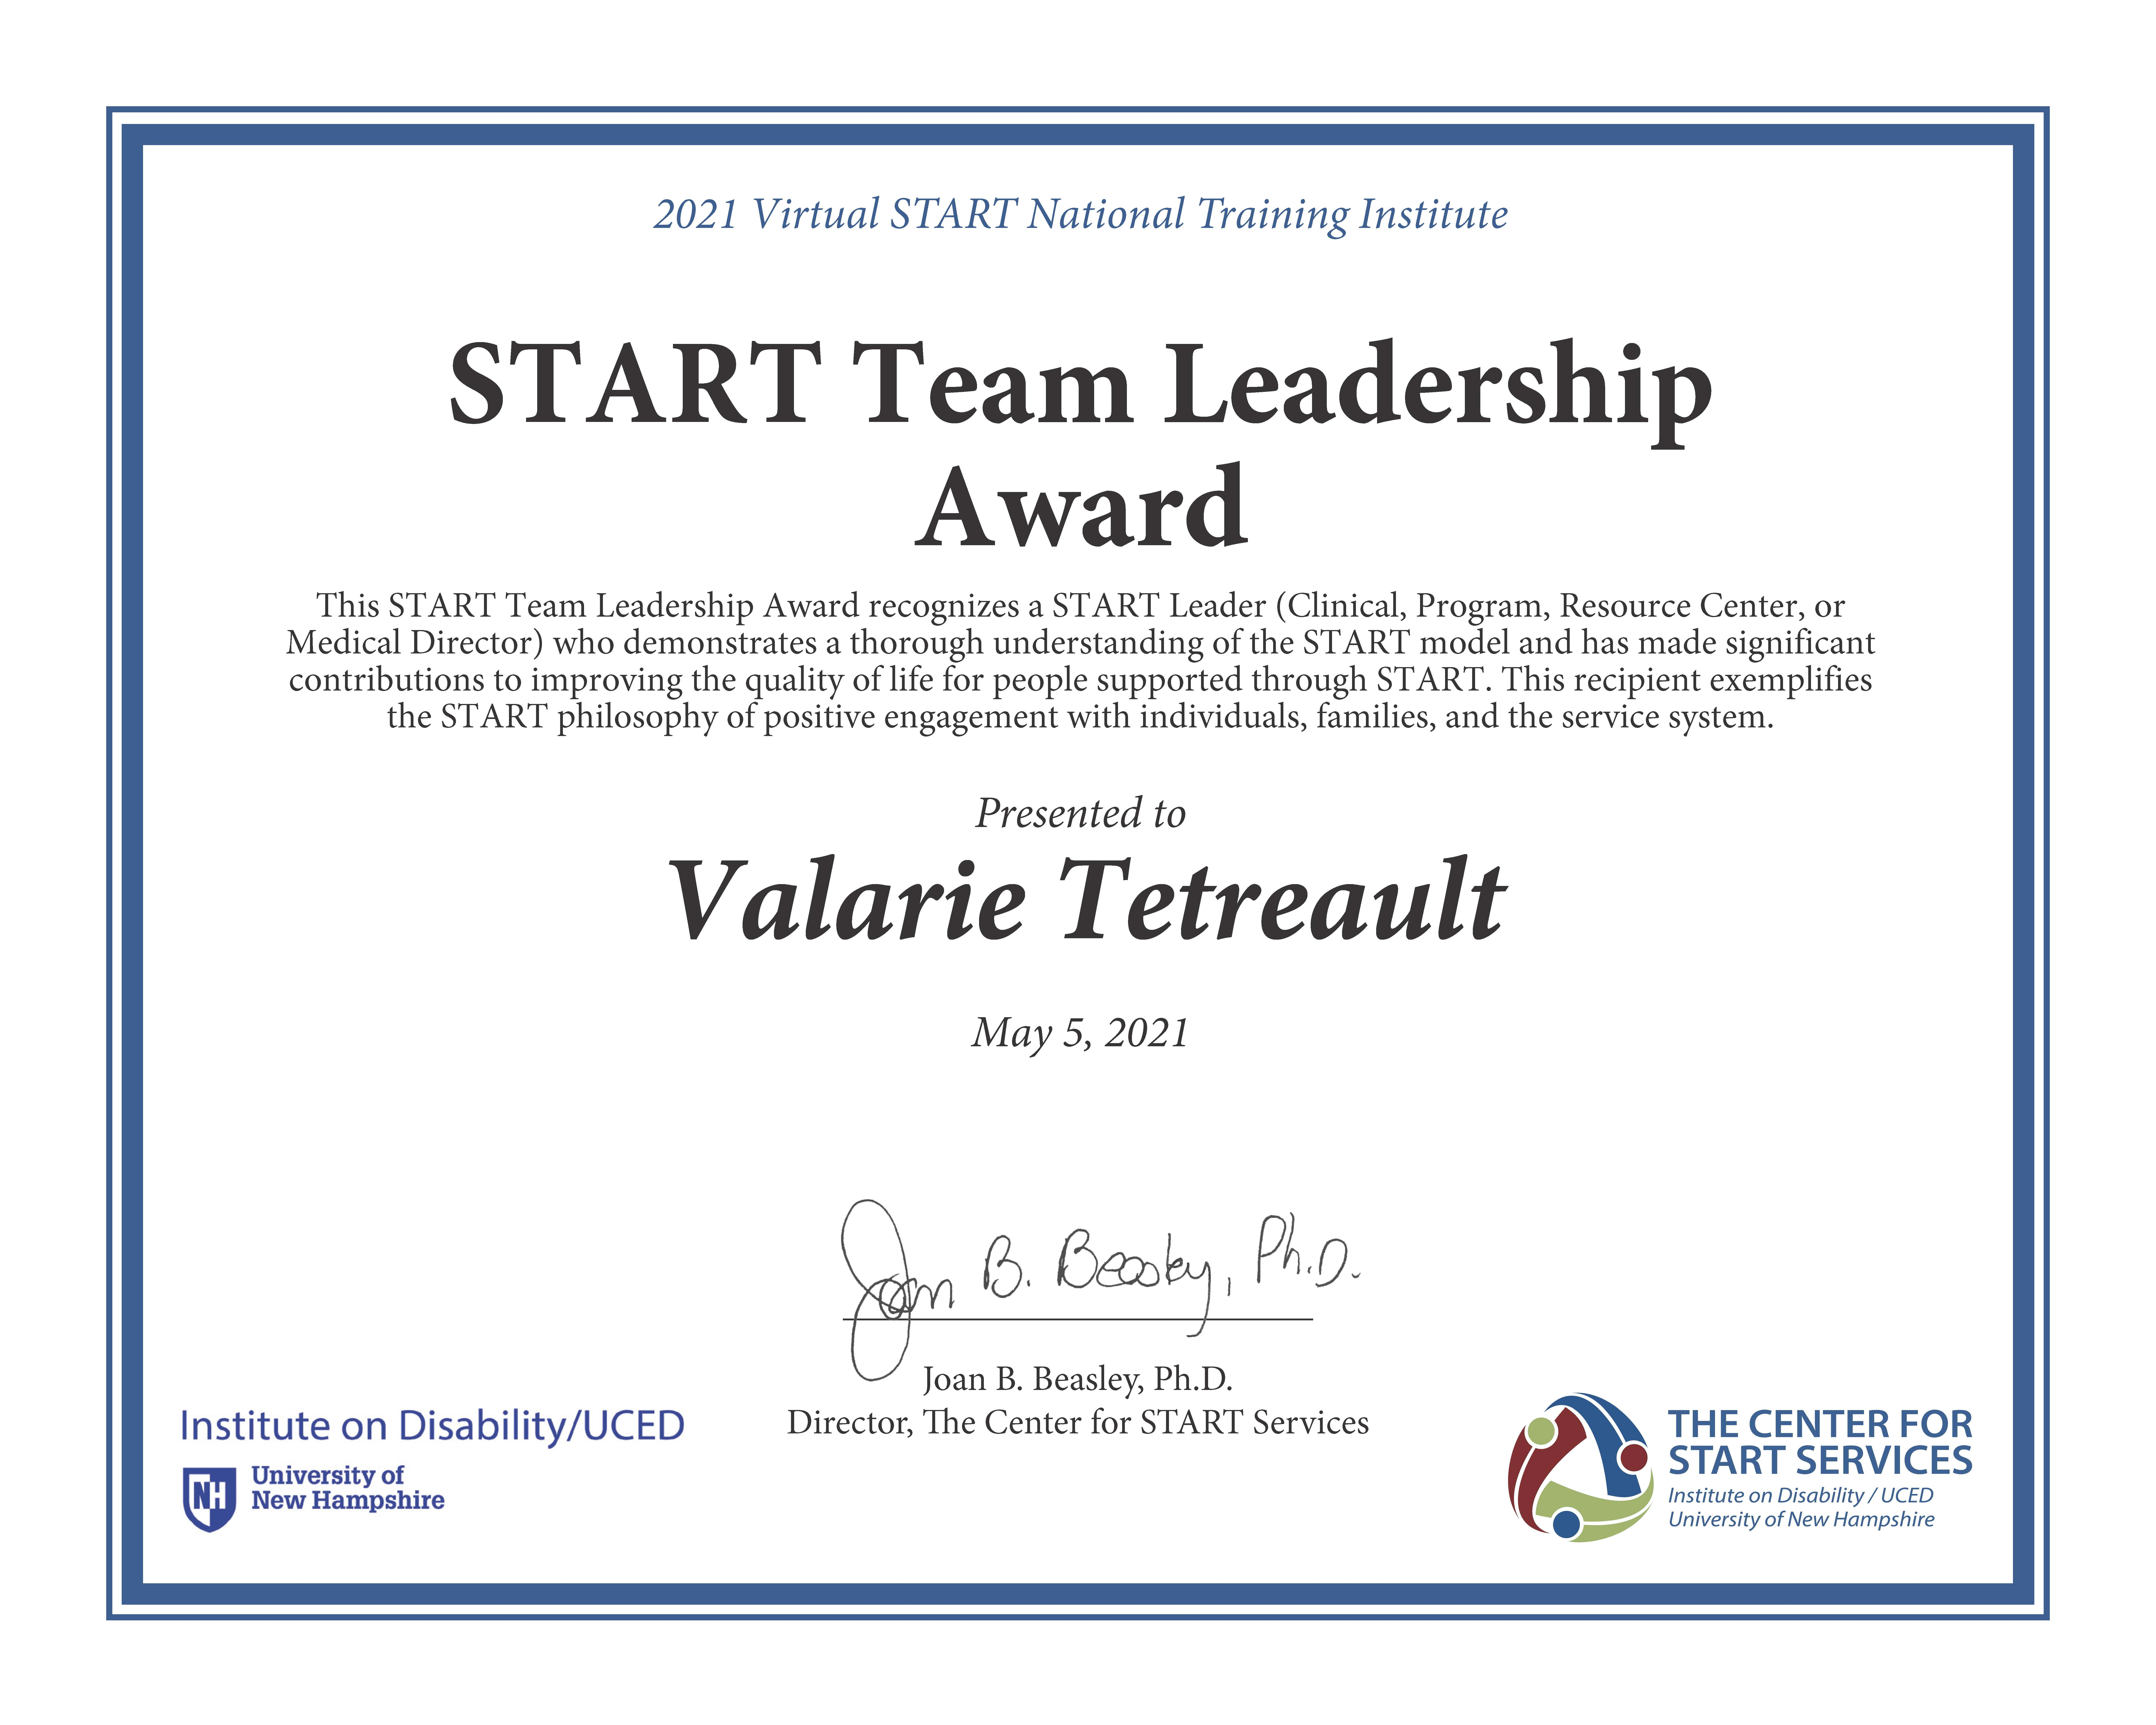 Certificate reads: 2021 Virtual START National Training Institute START Team Leadership Award This START Team Leadership Award recognizes a START Leader (Clinical, Program, Resource Center, or Medical Director) who demonstrates a thorough understanding of the START model and has made significant contributions to improving the quality of life for people supported through START. This recipient exemplifies the START philosophy of positive engagement with individuals, families, and the service system. Presented to Valarie Tetreault May 5, 2021 Joan B. Beasley, Ph.D. Director, The Center for START Services. Includes logo of the Institude on Disability in lower left corner and logo of START Services in lower right corner